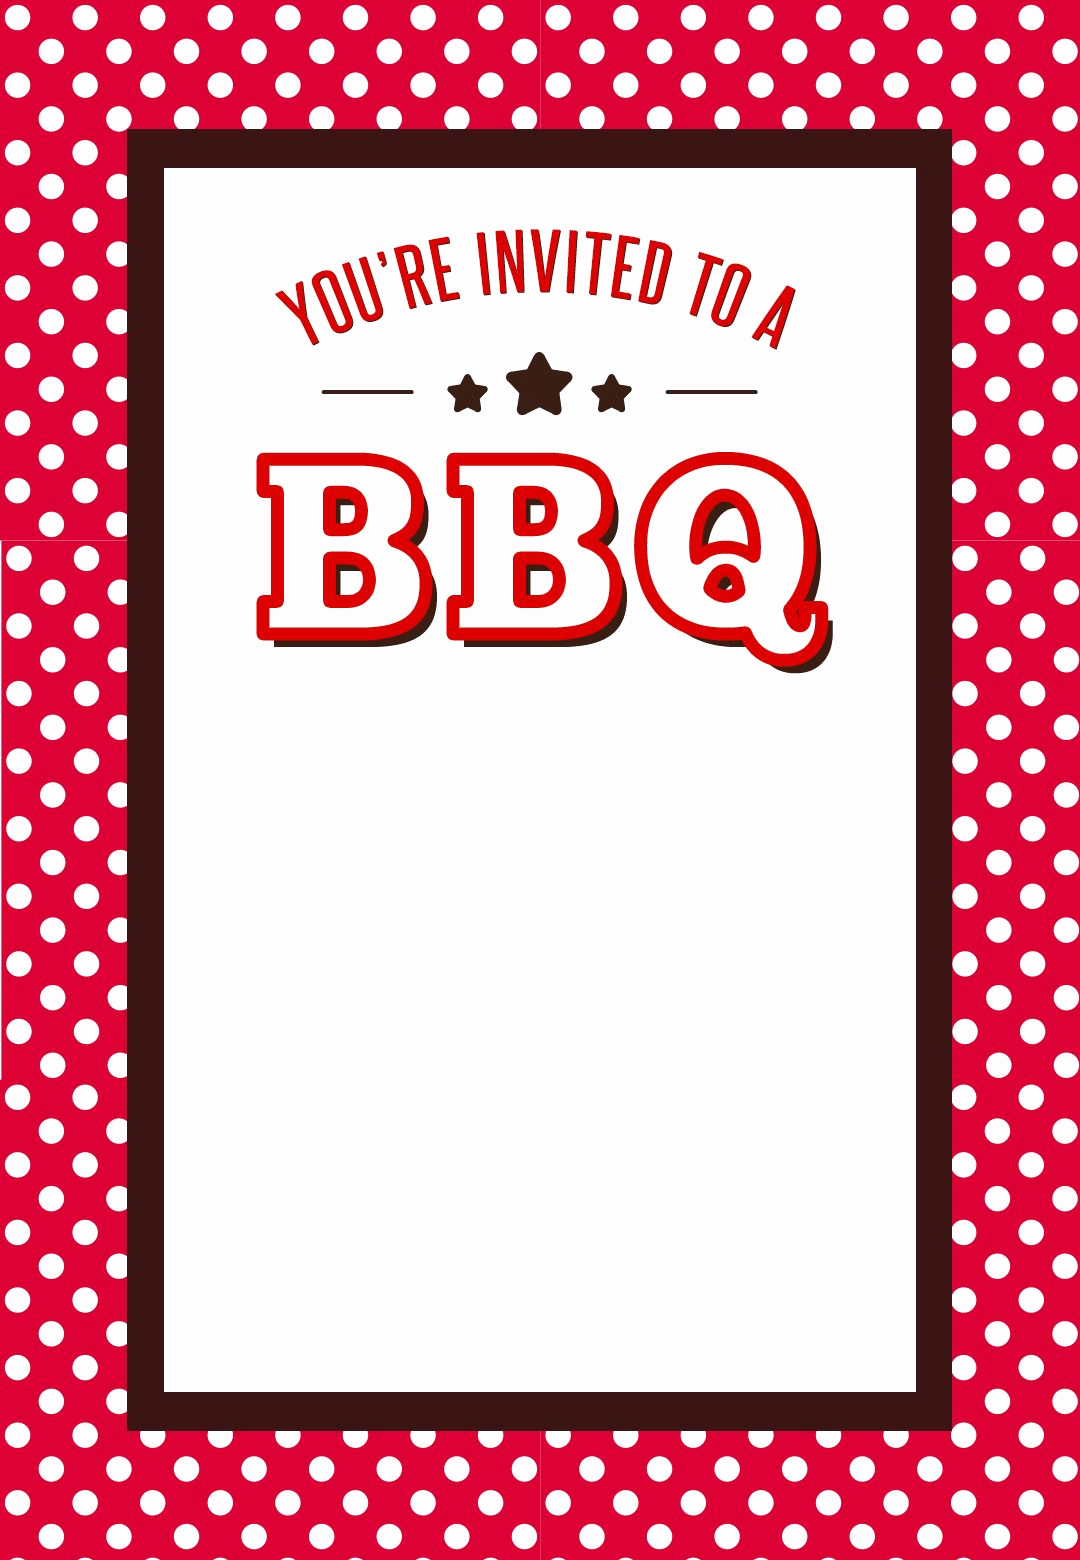 Bbq Menu Template Free Awesome Gratis Template Uitnodiging